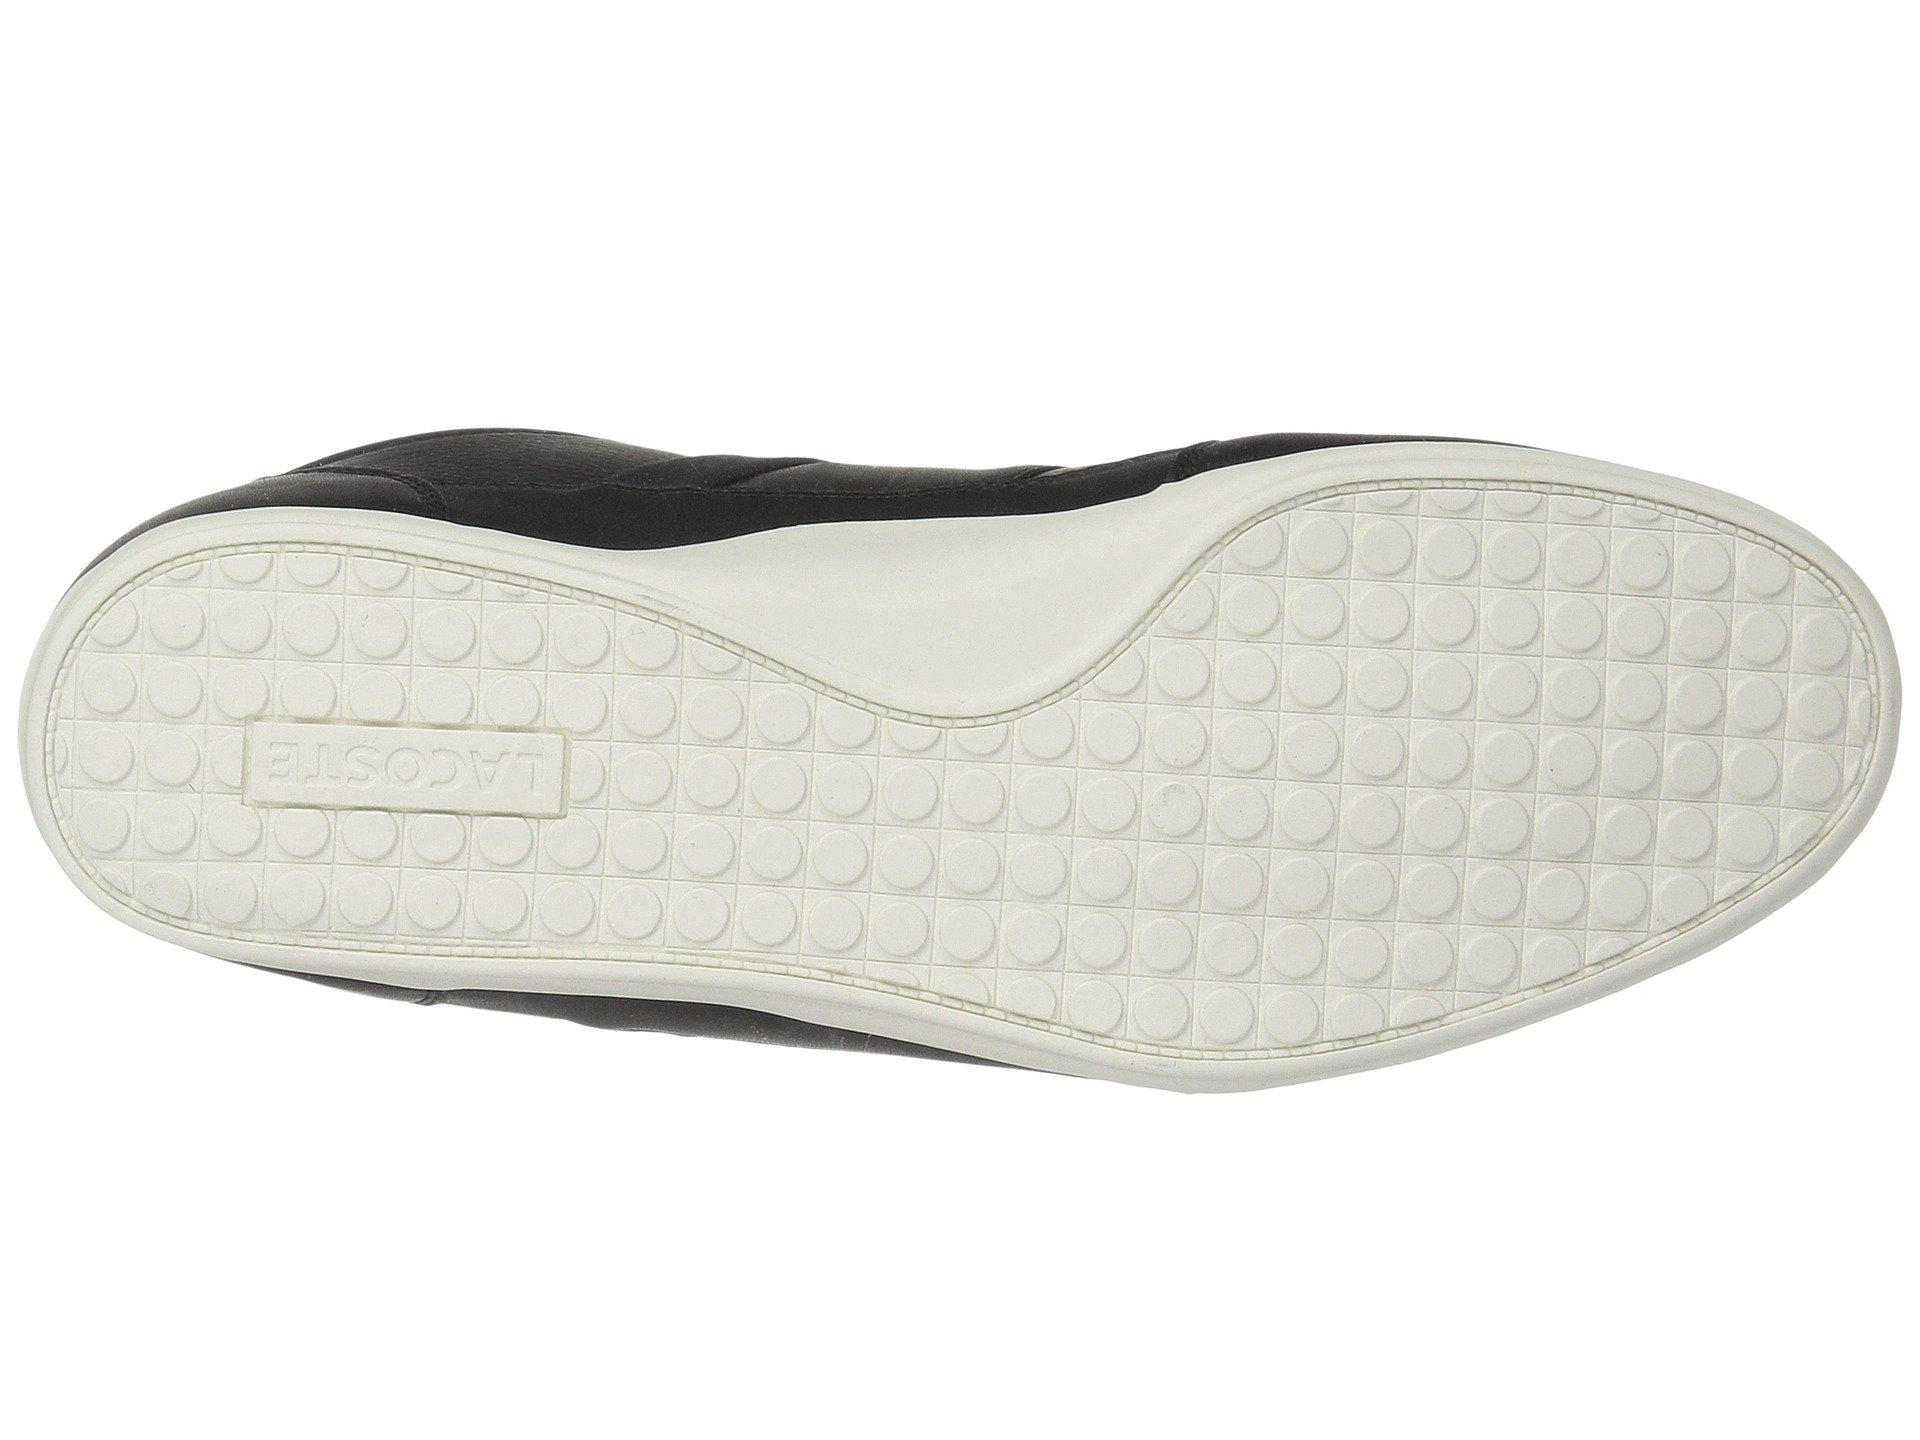 cce58728f9e1 Lyst - Lacoste Chaymon 118 2 (black red) Men s Shoes in Black for Men